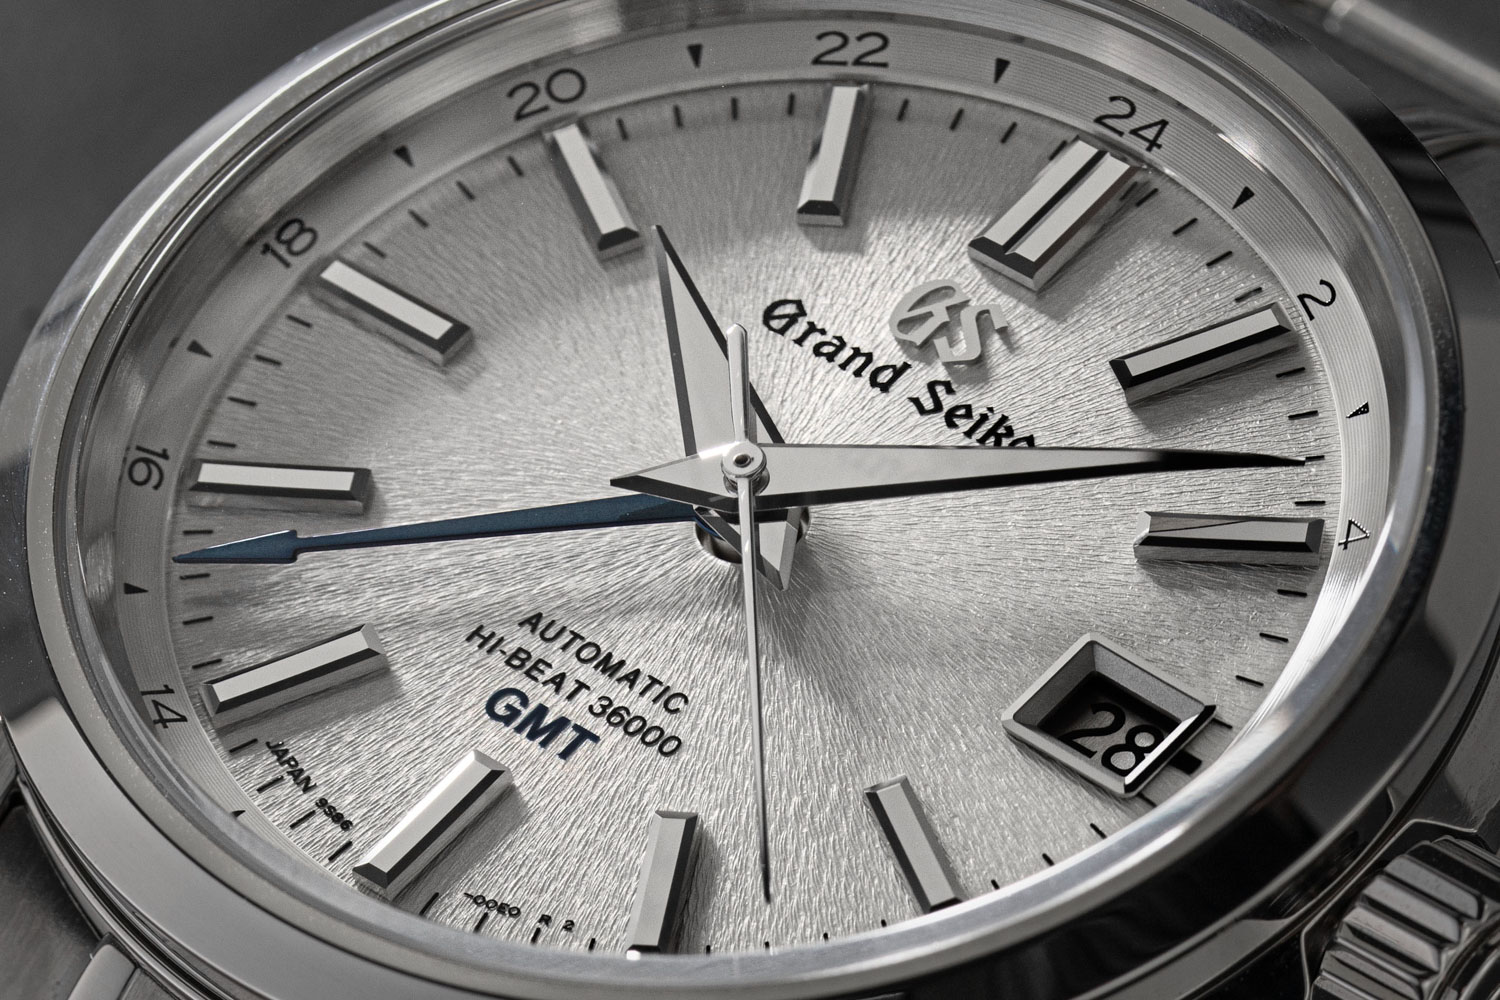 The Grand Seiko Hi-Beat SBGJ201 features a GMT indicator in the form of a 24 hour home time scale, delicately printed at the perimeter of the dial and read off a flame blued arrow tipped hand (©Revolution)